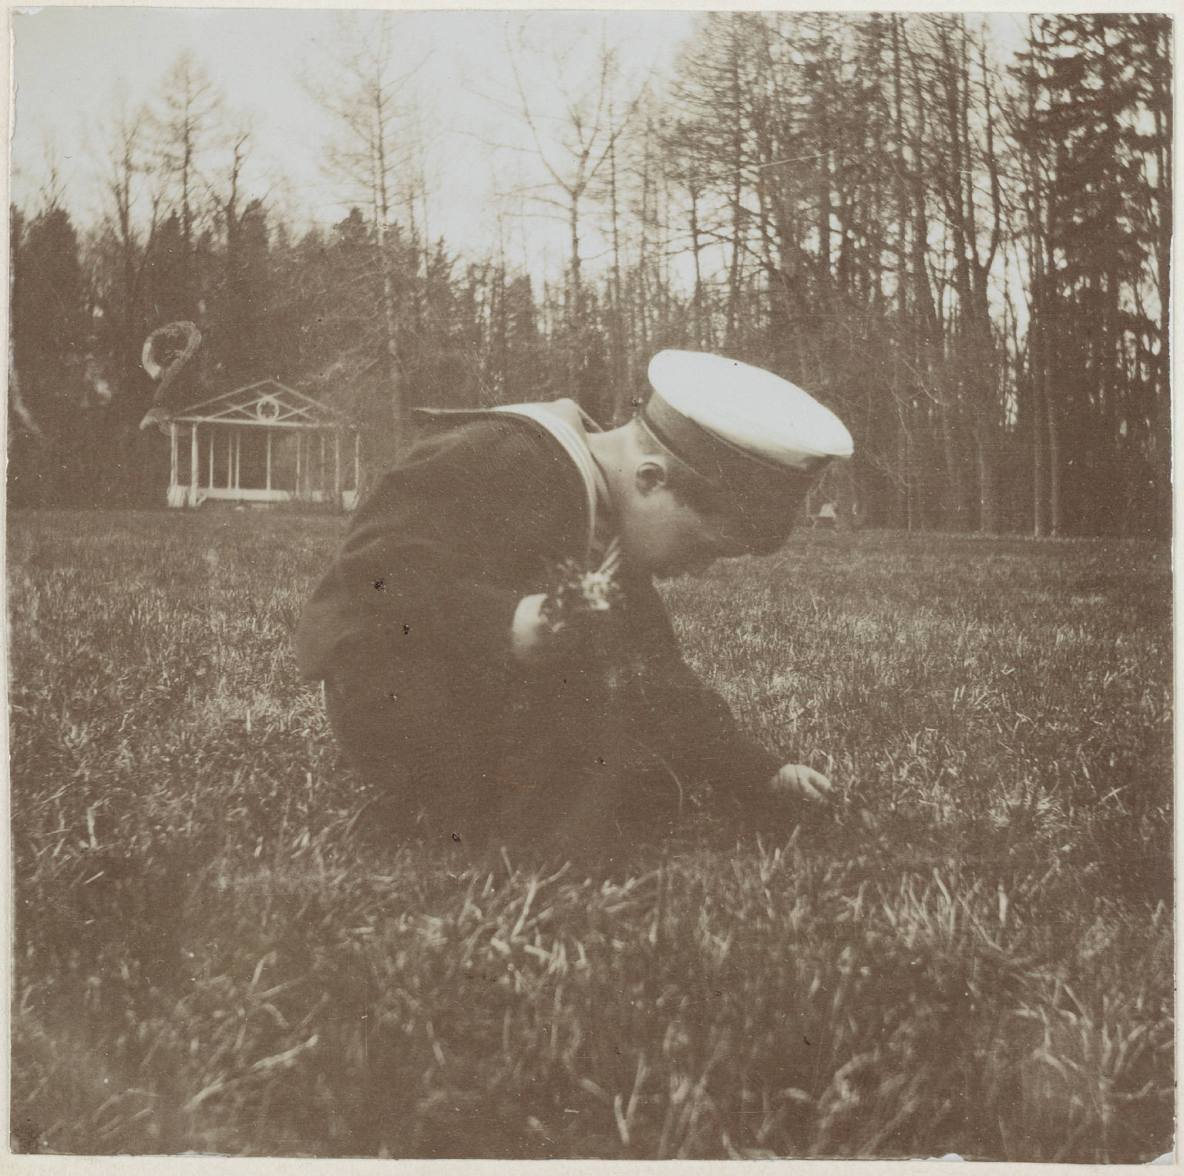 Photography from the private archive of the Romanovs family-Lujon Magazine45